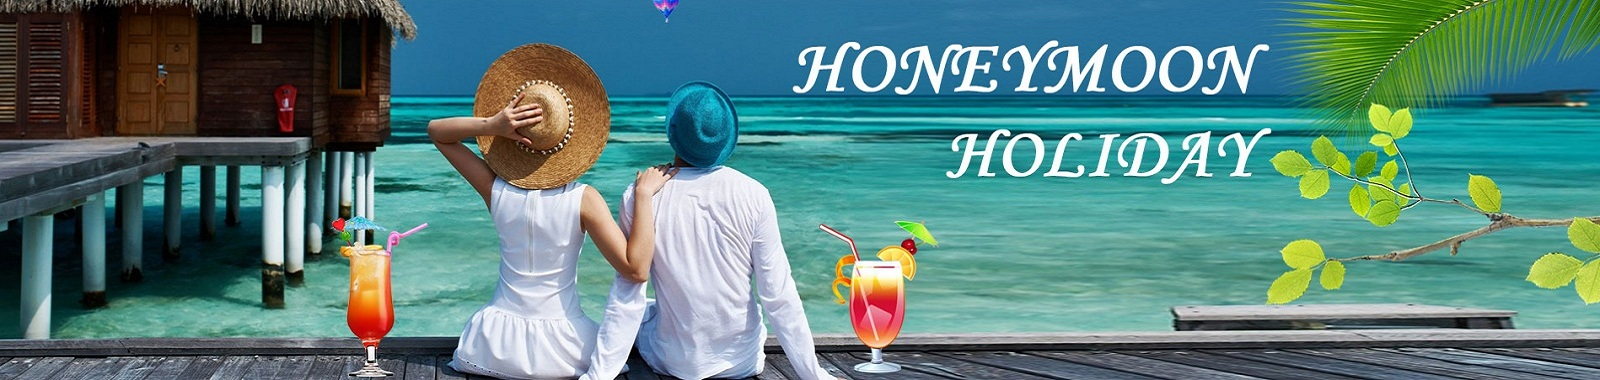 Honeymoon Holiday Packages